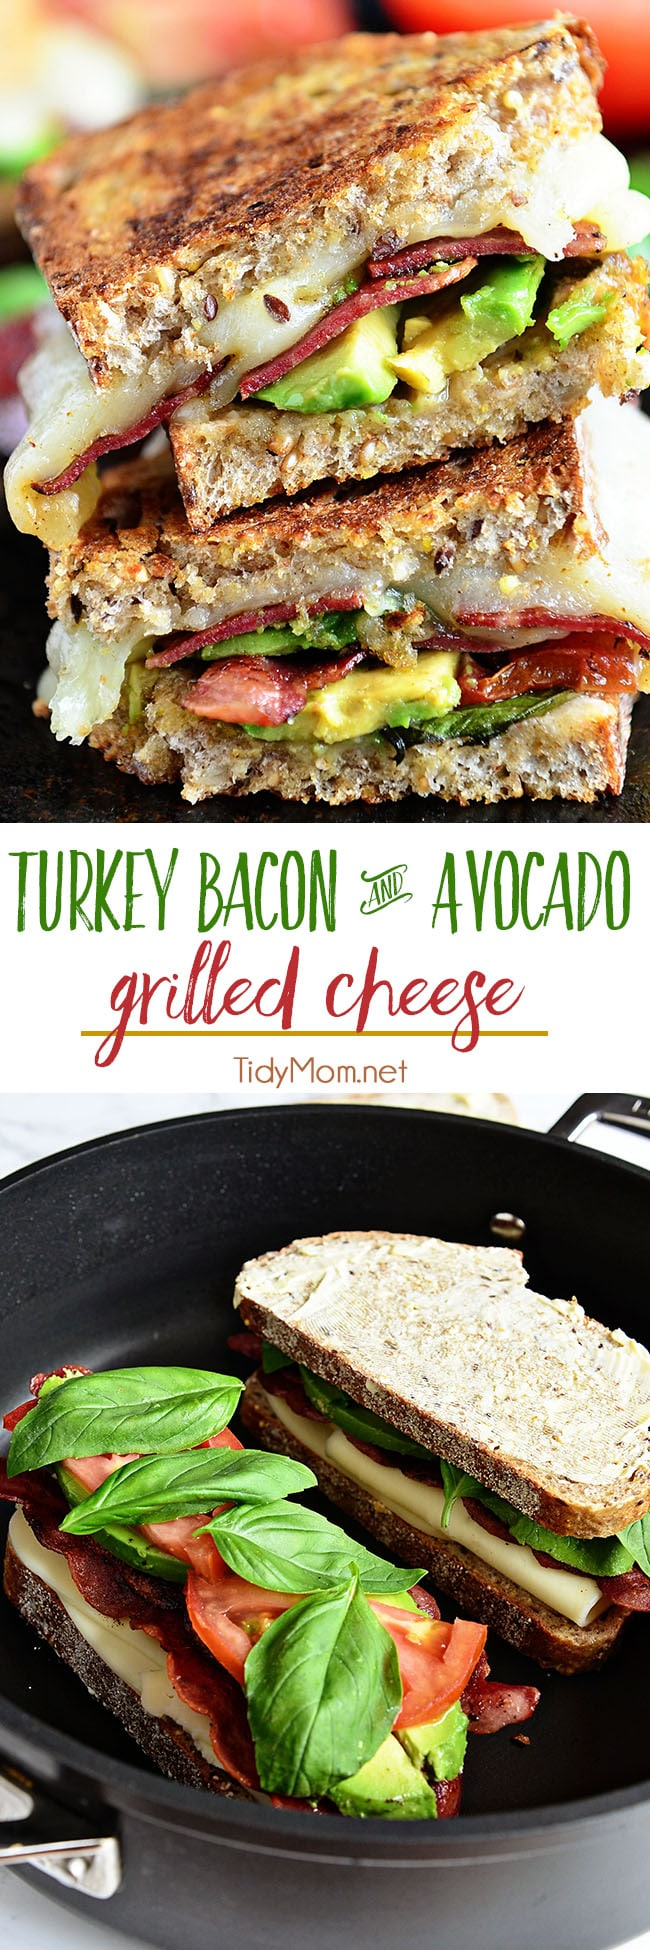 This has been one of those sandwiches that I like to just keep in my arsenal of quick, easy and absolutely delicious go-to recipes.  Great for summer, because you don't have to heat up the house, yet you still have a hot meal to put on the table. My whole family loves this Turkey Bacon and Avocado Grilled Cheese sandwich. Printable recipe + video at TidyMom.net #grilledcheese #sandwich #avocado #bacon #turkey #cheese